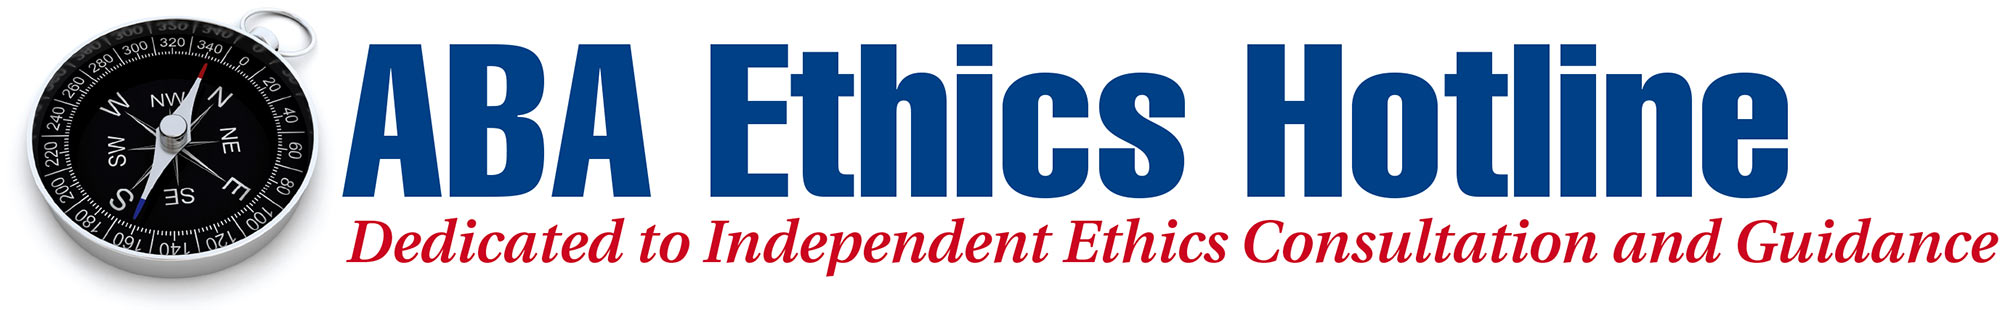 ABA Ethics Hotline - Dedicated to Independent Ethics Consultation and Guidance